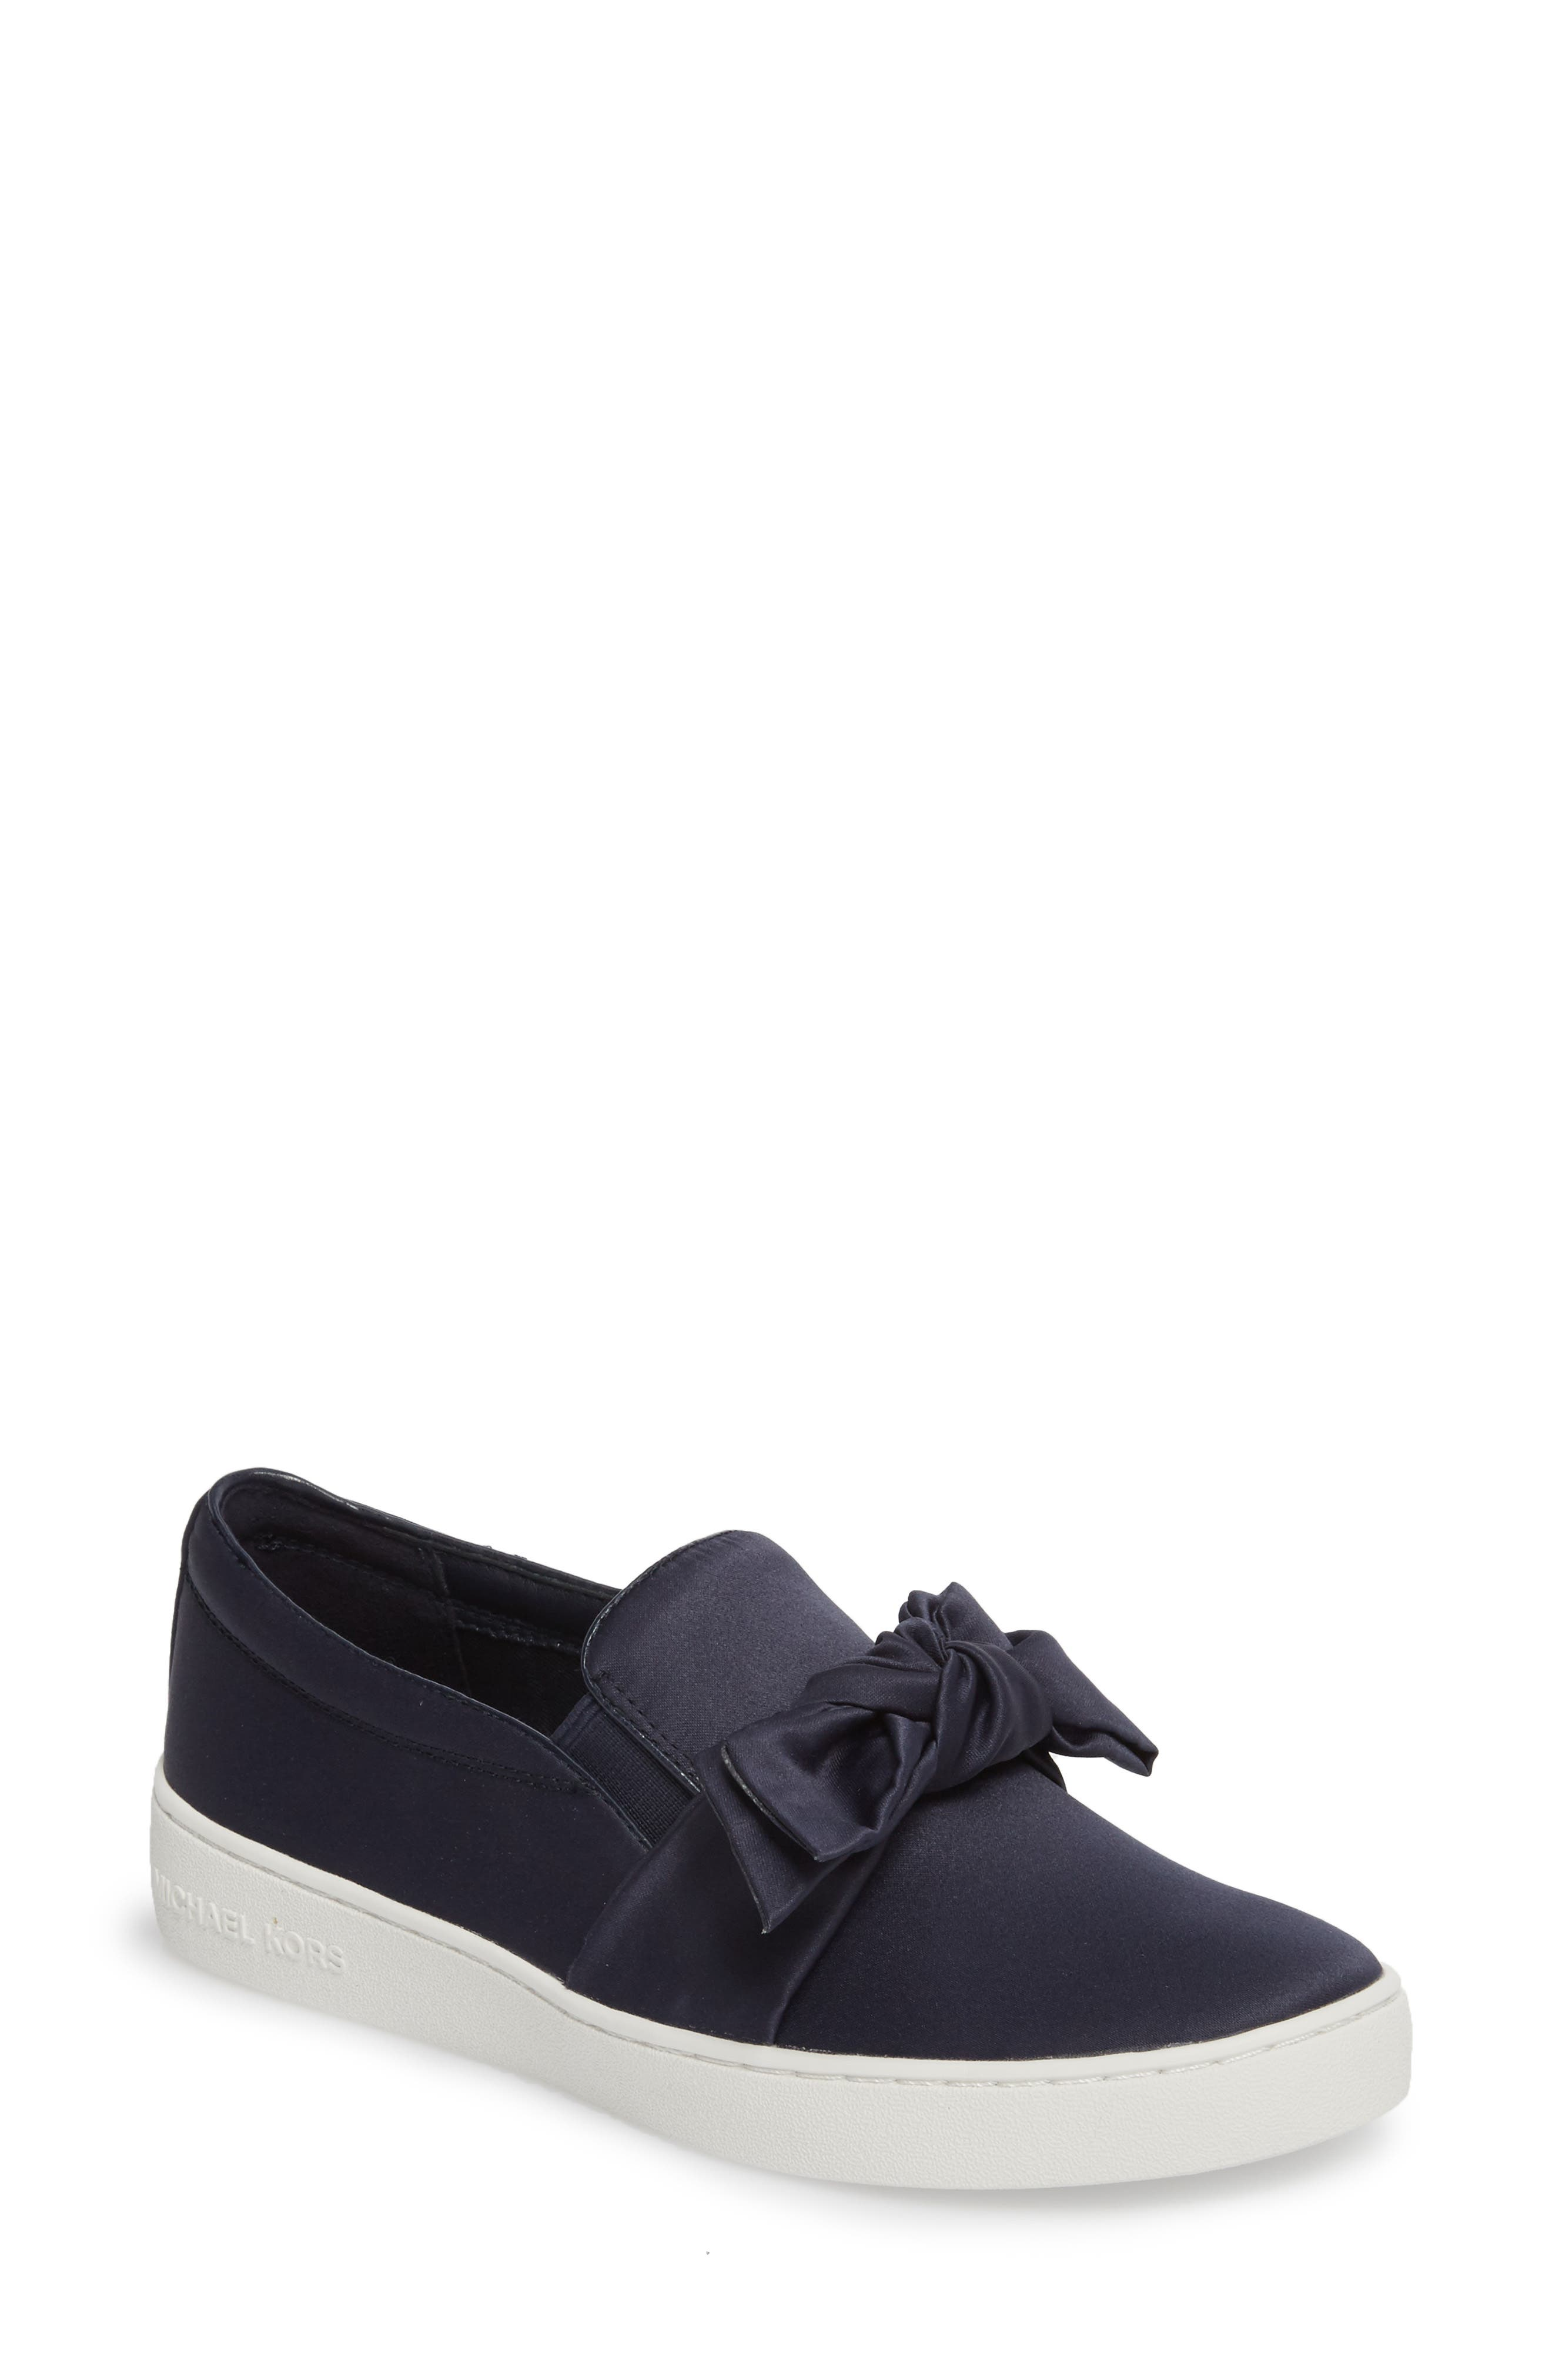 Willa Sneaker,                             Main thumbnail 1, color,                             Admiral Satin